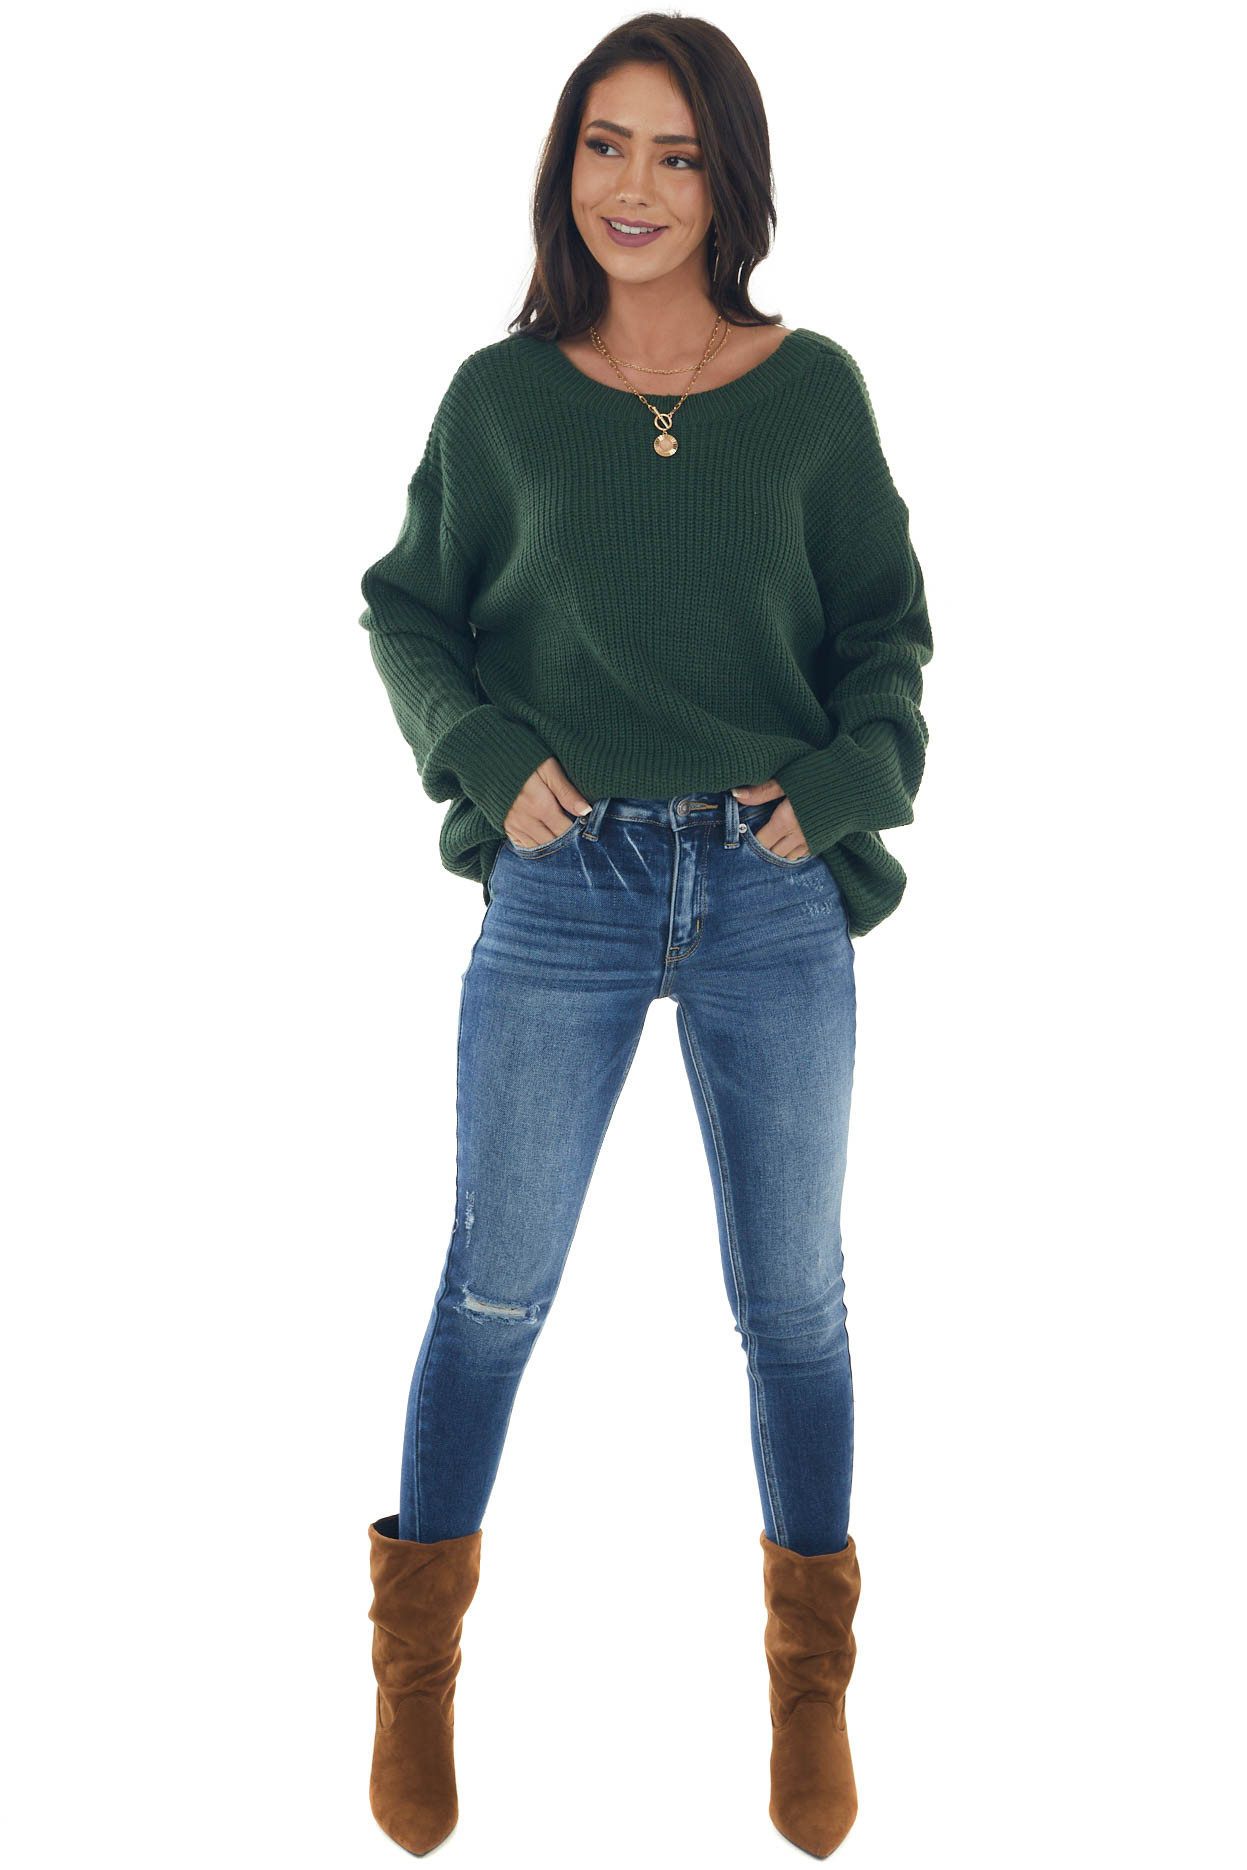 Forest Boat Neckline Knit Sweater with Back Cutout Detail